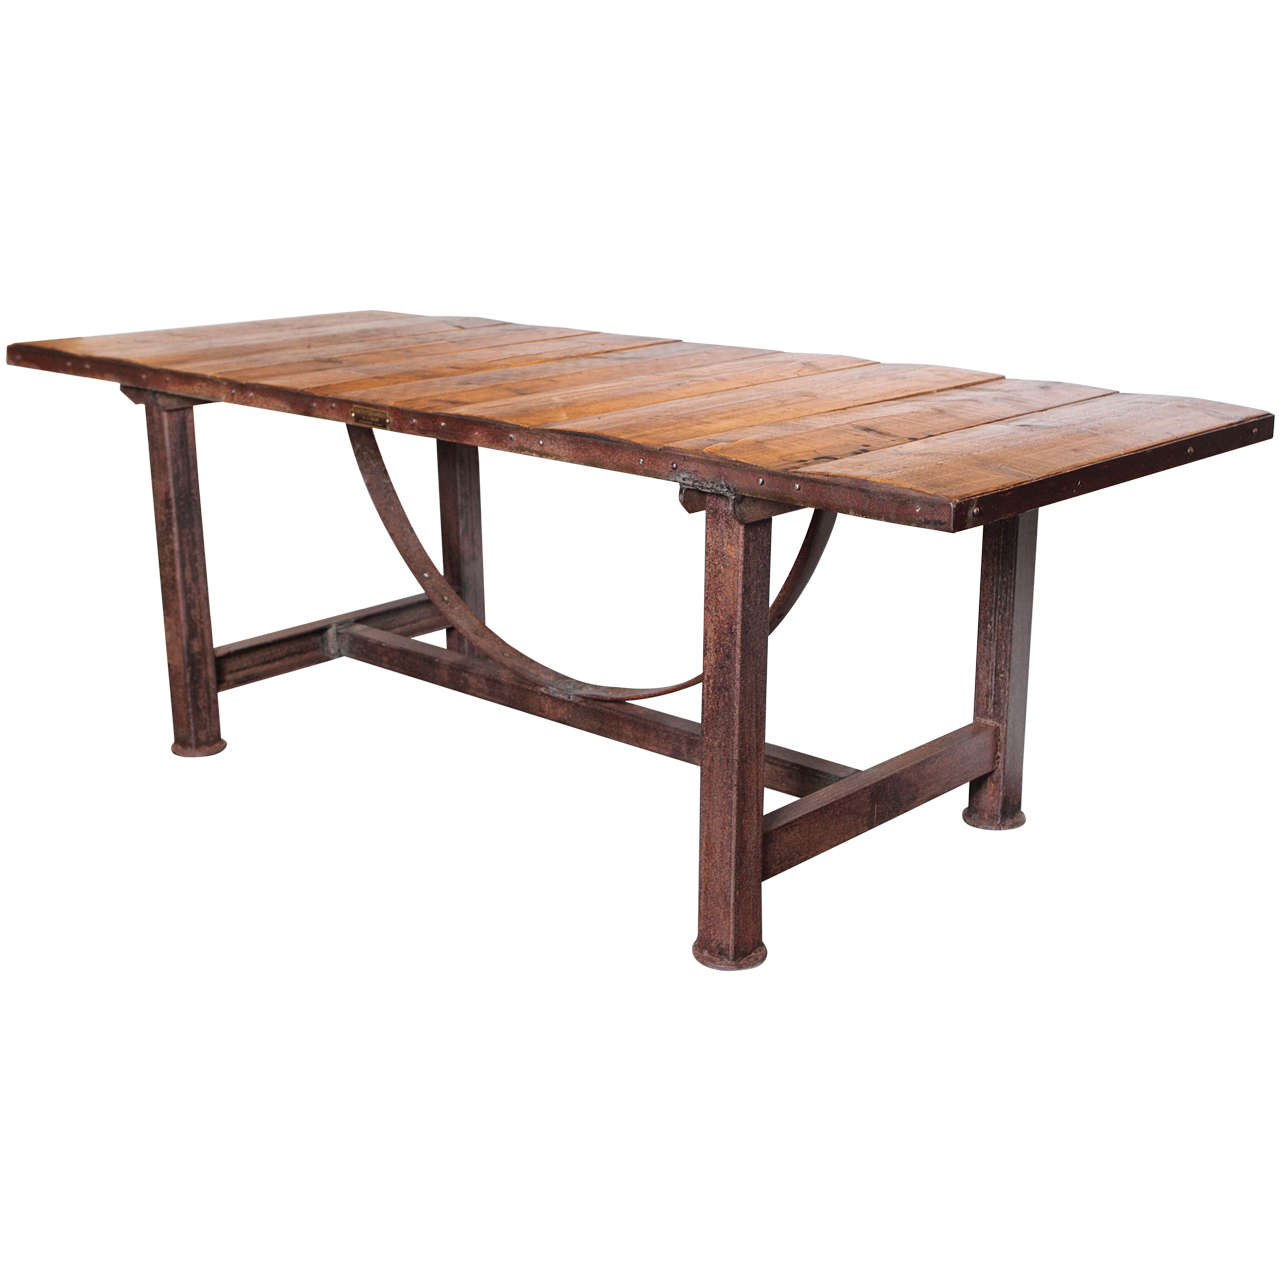 Industrial pine dining table from limagne france at 1stdibs for Pine dining room table